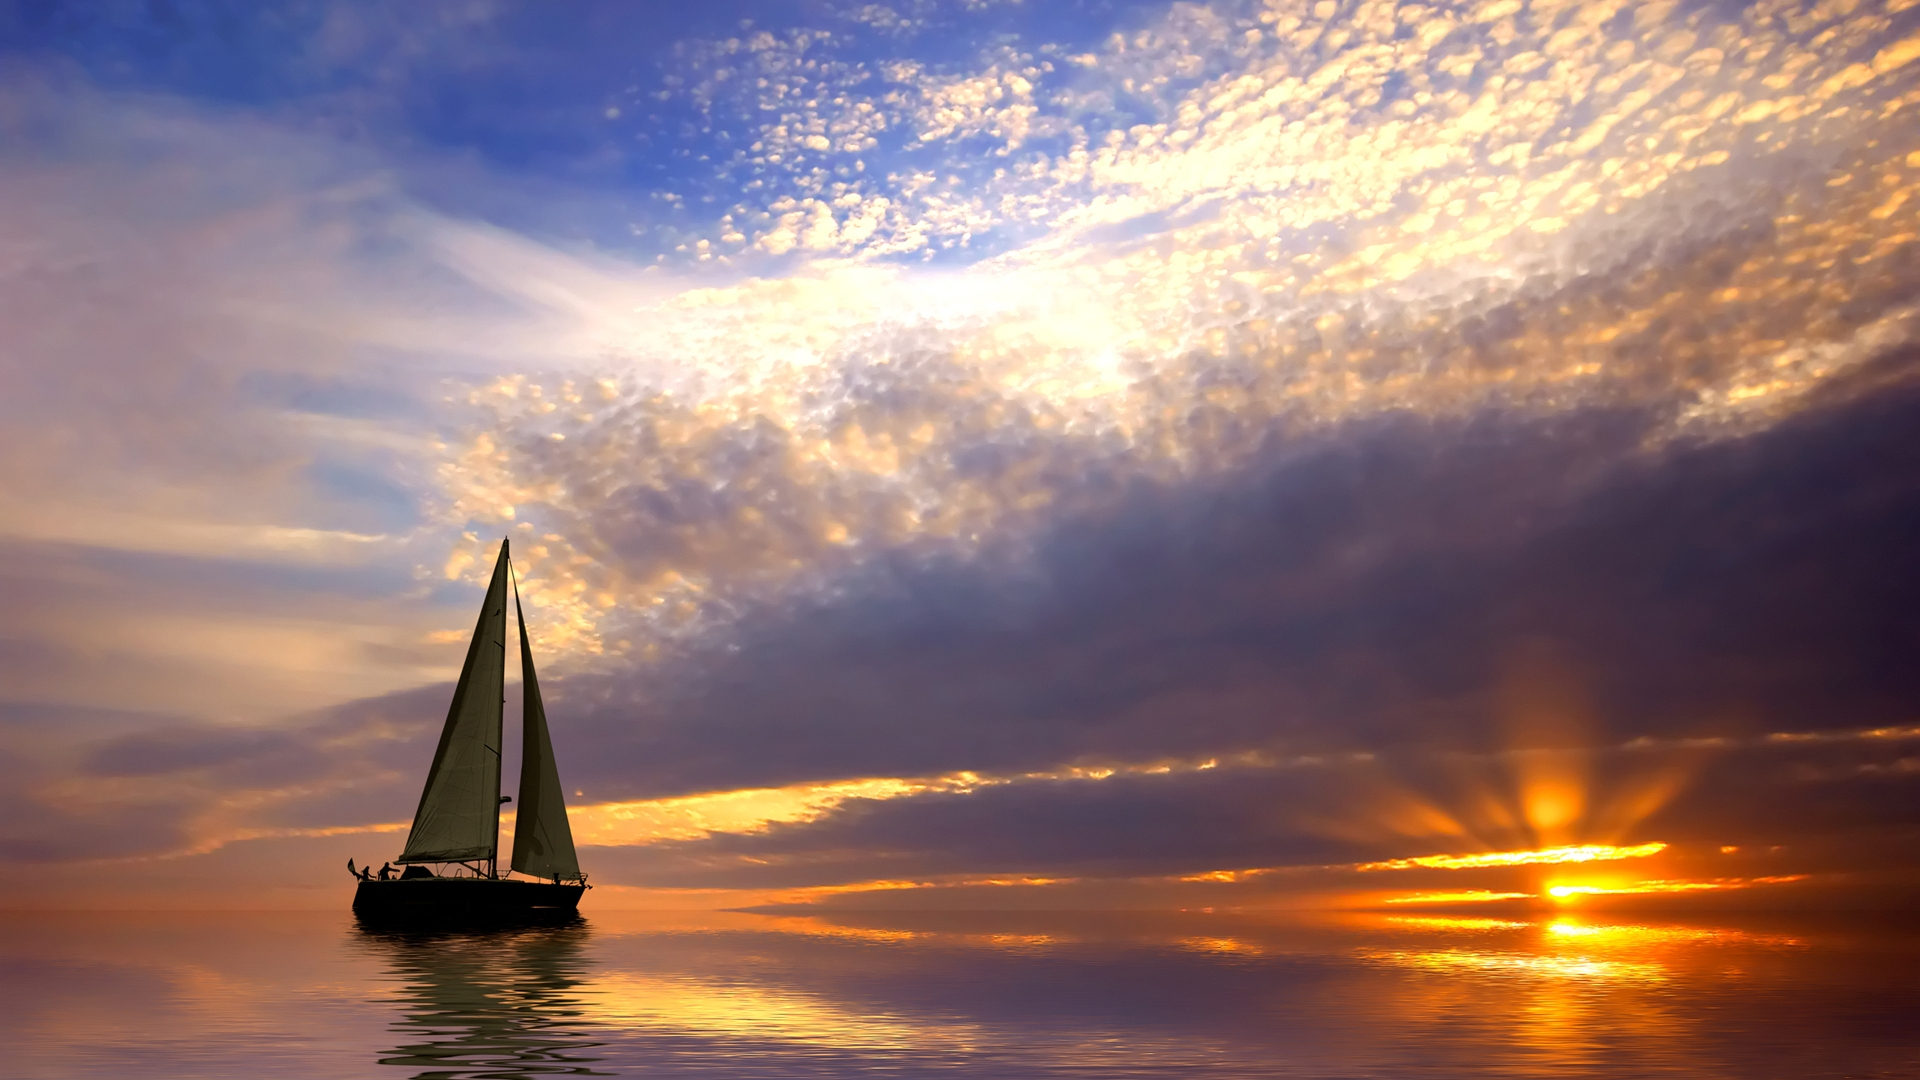 Sunset Sailing Wallpaper